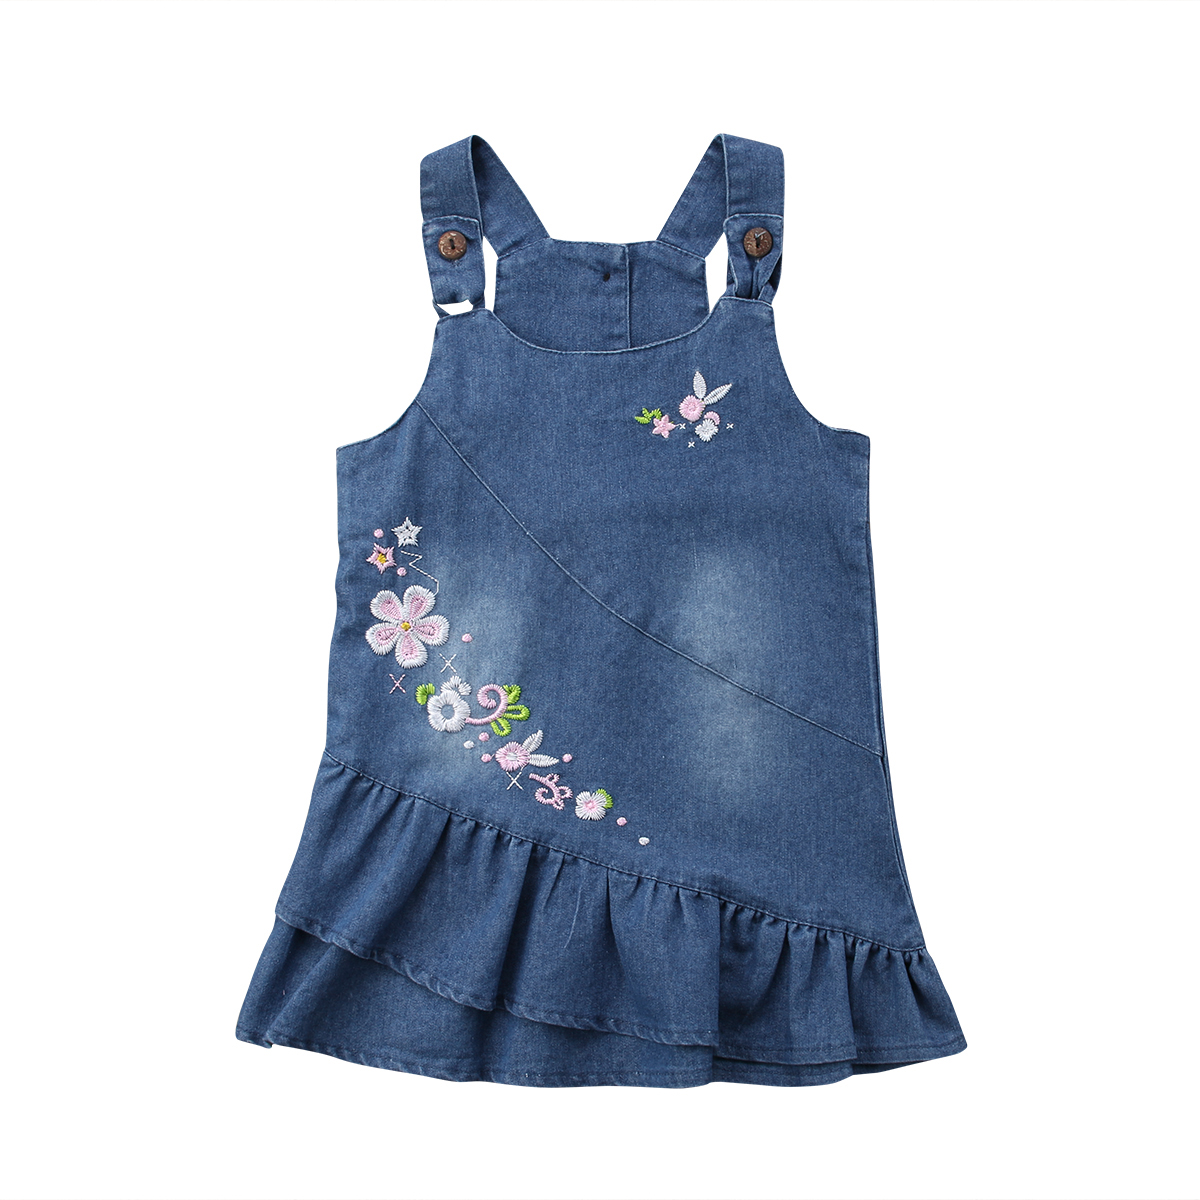 2018 Fashion Baby Girls Suspender Denim Dress Summer Floral Toddler Kids Sundress Jeans Sleeveless Dresses for Kids Girl Clothes summer baby girl printed pattern straps dresses toddler girls baby clothing sleeveless baby dress kids casual clothes yp